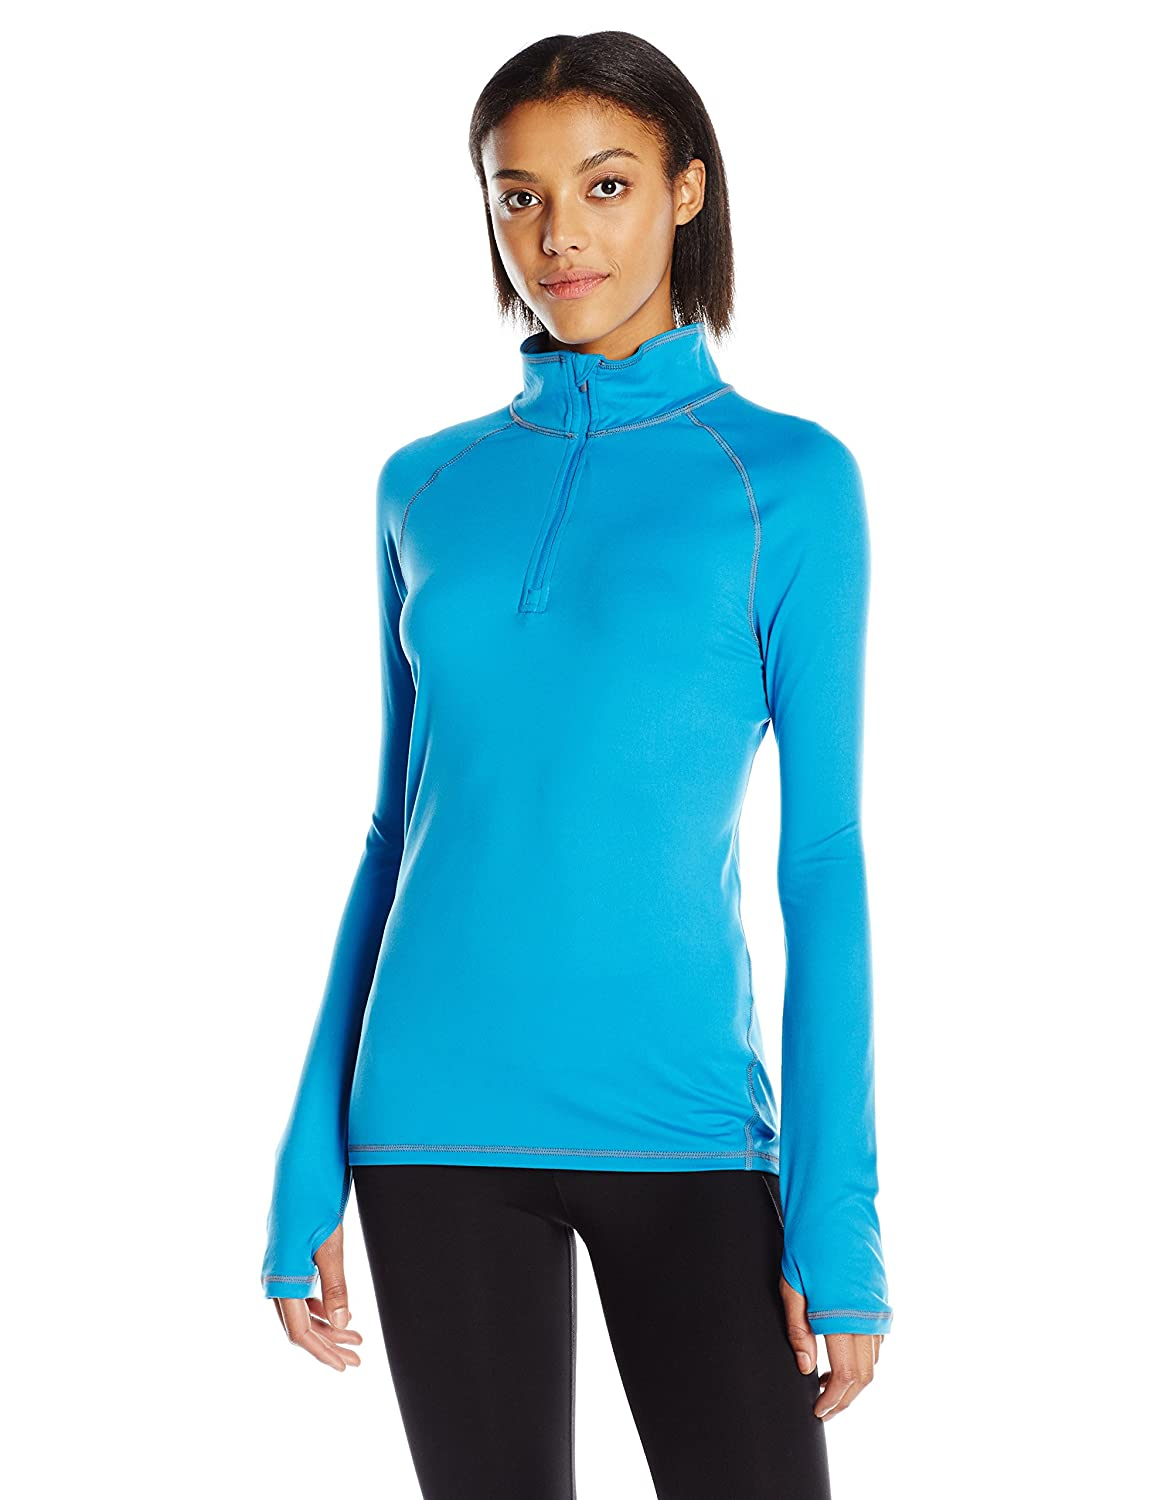 95a7250f6bc Hanes Sport Women's Performance Fleece Quarter Zip Pullover at Amazon Women's  Clothing store: